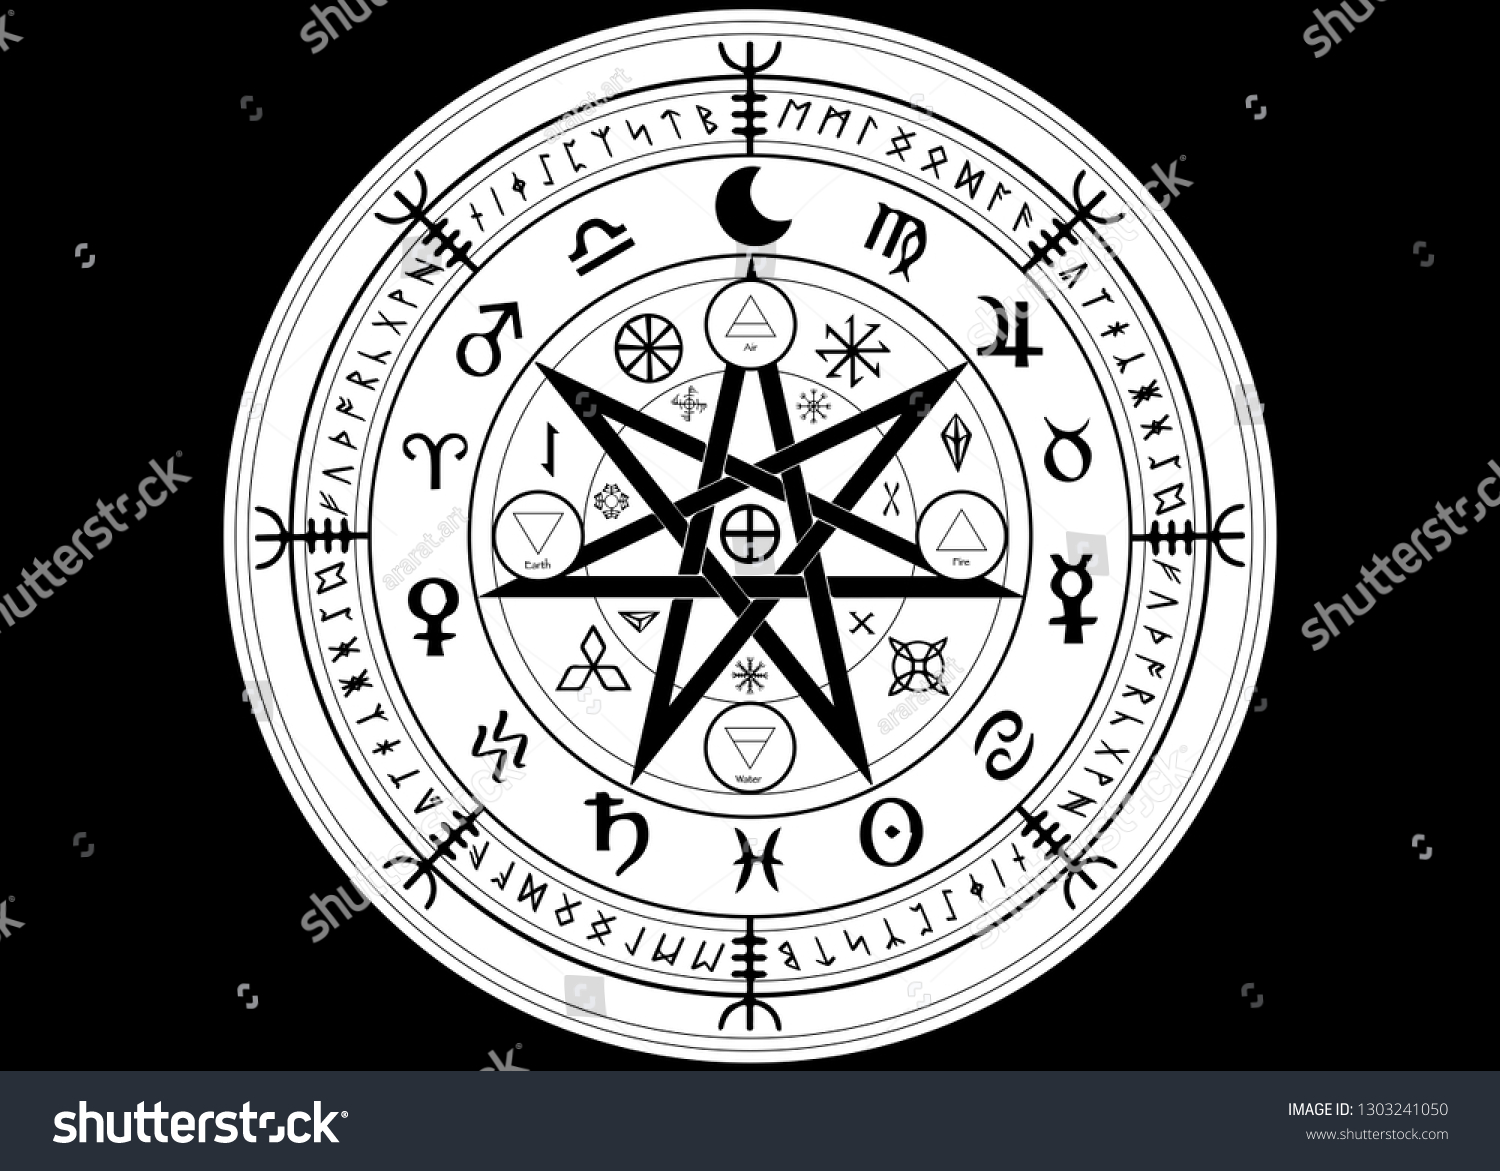 Wiccan symbol of protection. Set of Mandala Witches runes, Mystic Wicca divination. Ancient occult symbols, Earth Zodiac Wheel of the Year Wicca Astrological signs, vector isolated or black background #1303241050